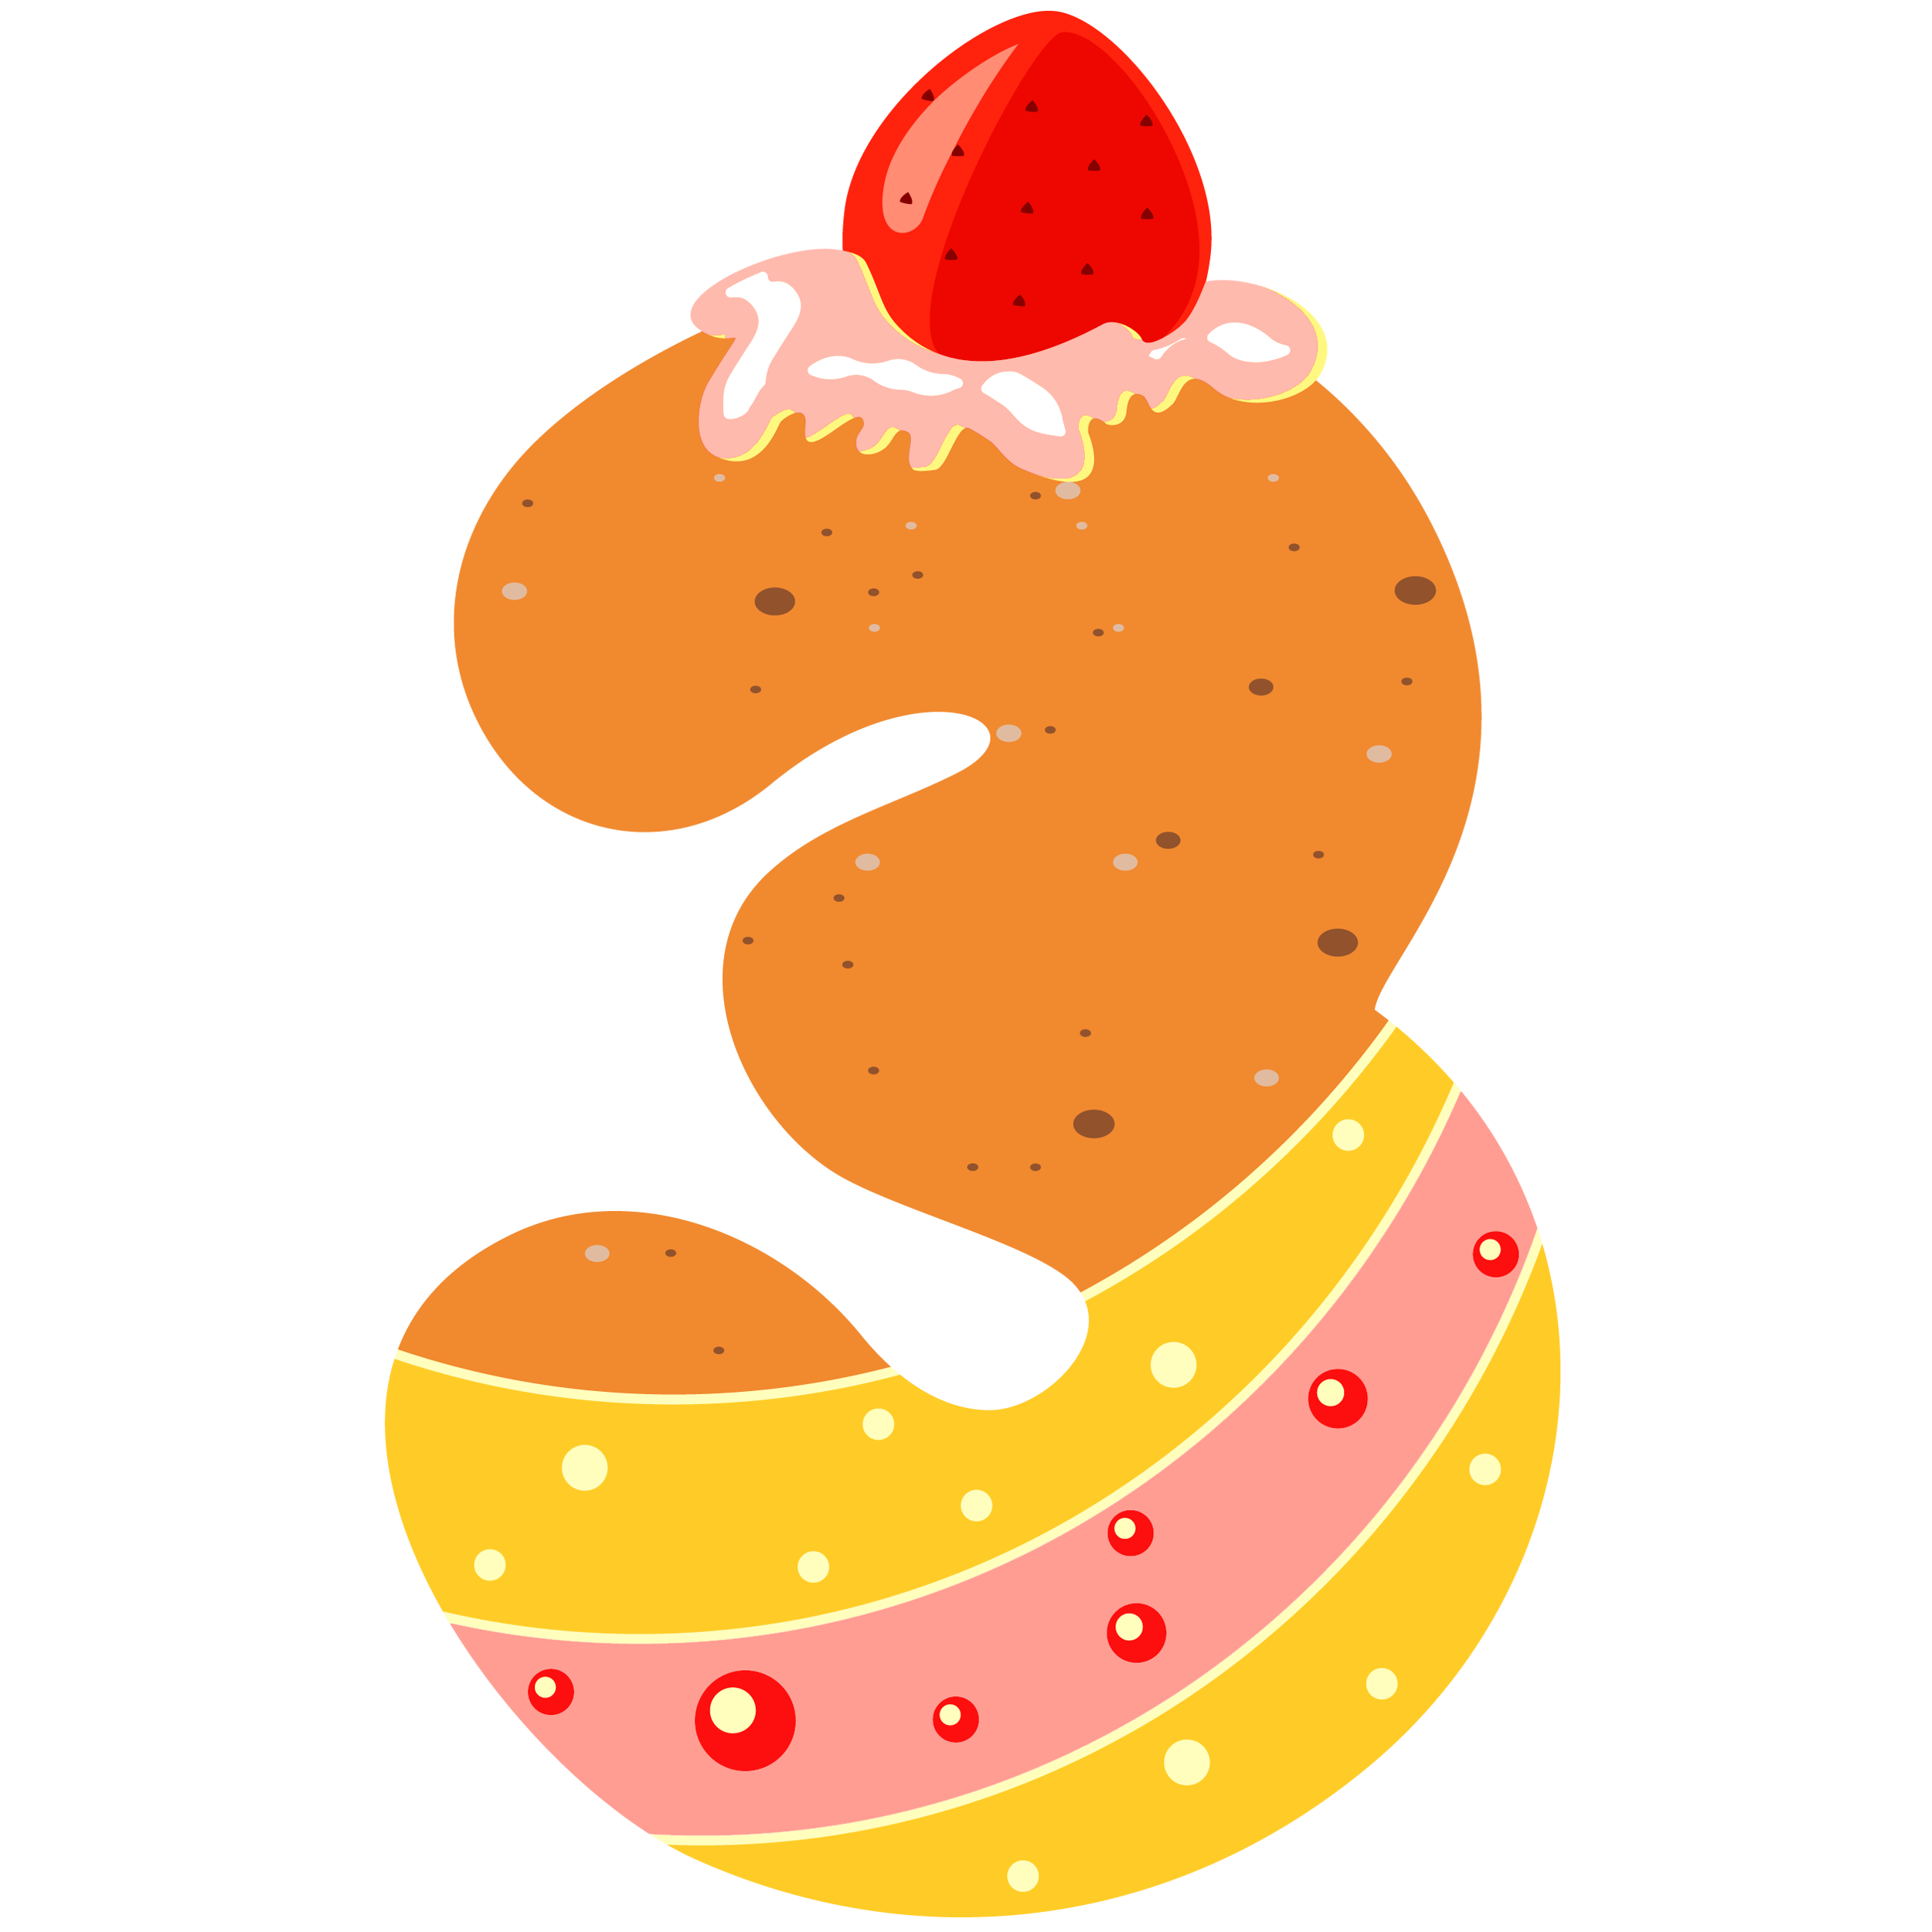 3 clipart sweet. Number three png image